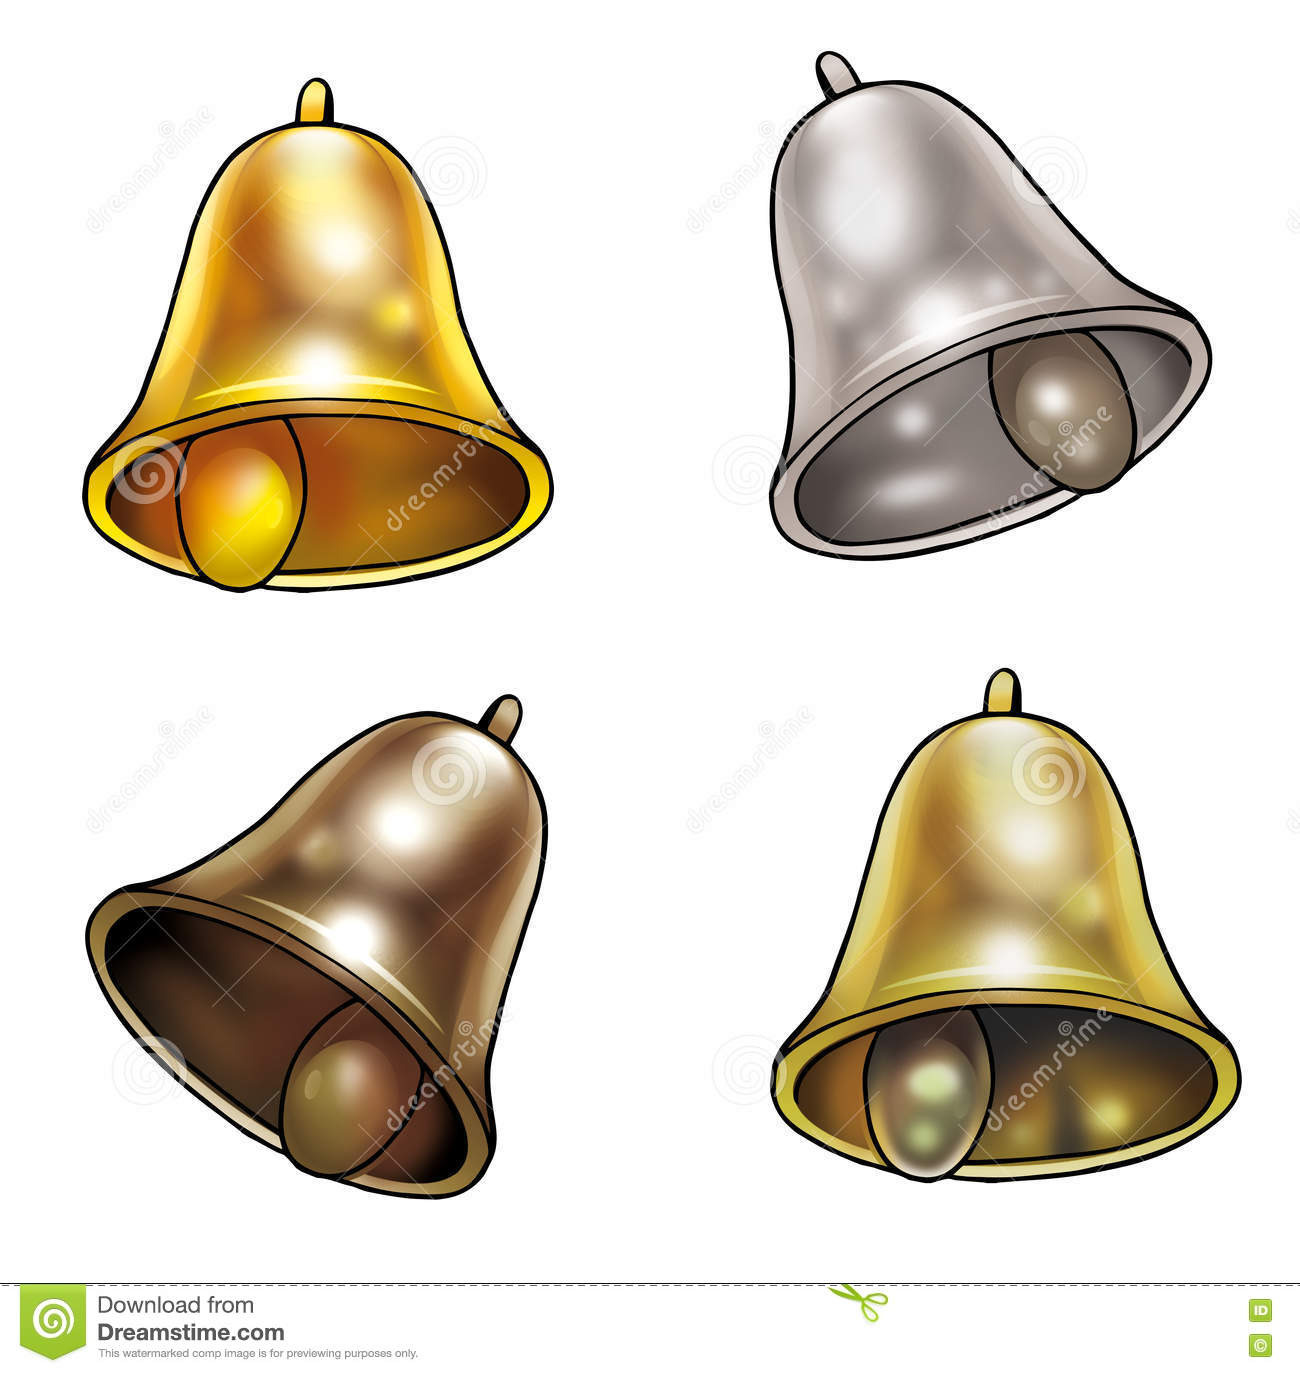 Download Bells Holiday stock image. Illustration of four, bluebell - 71763217